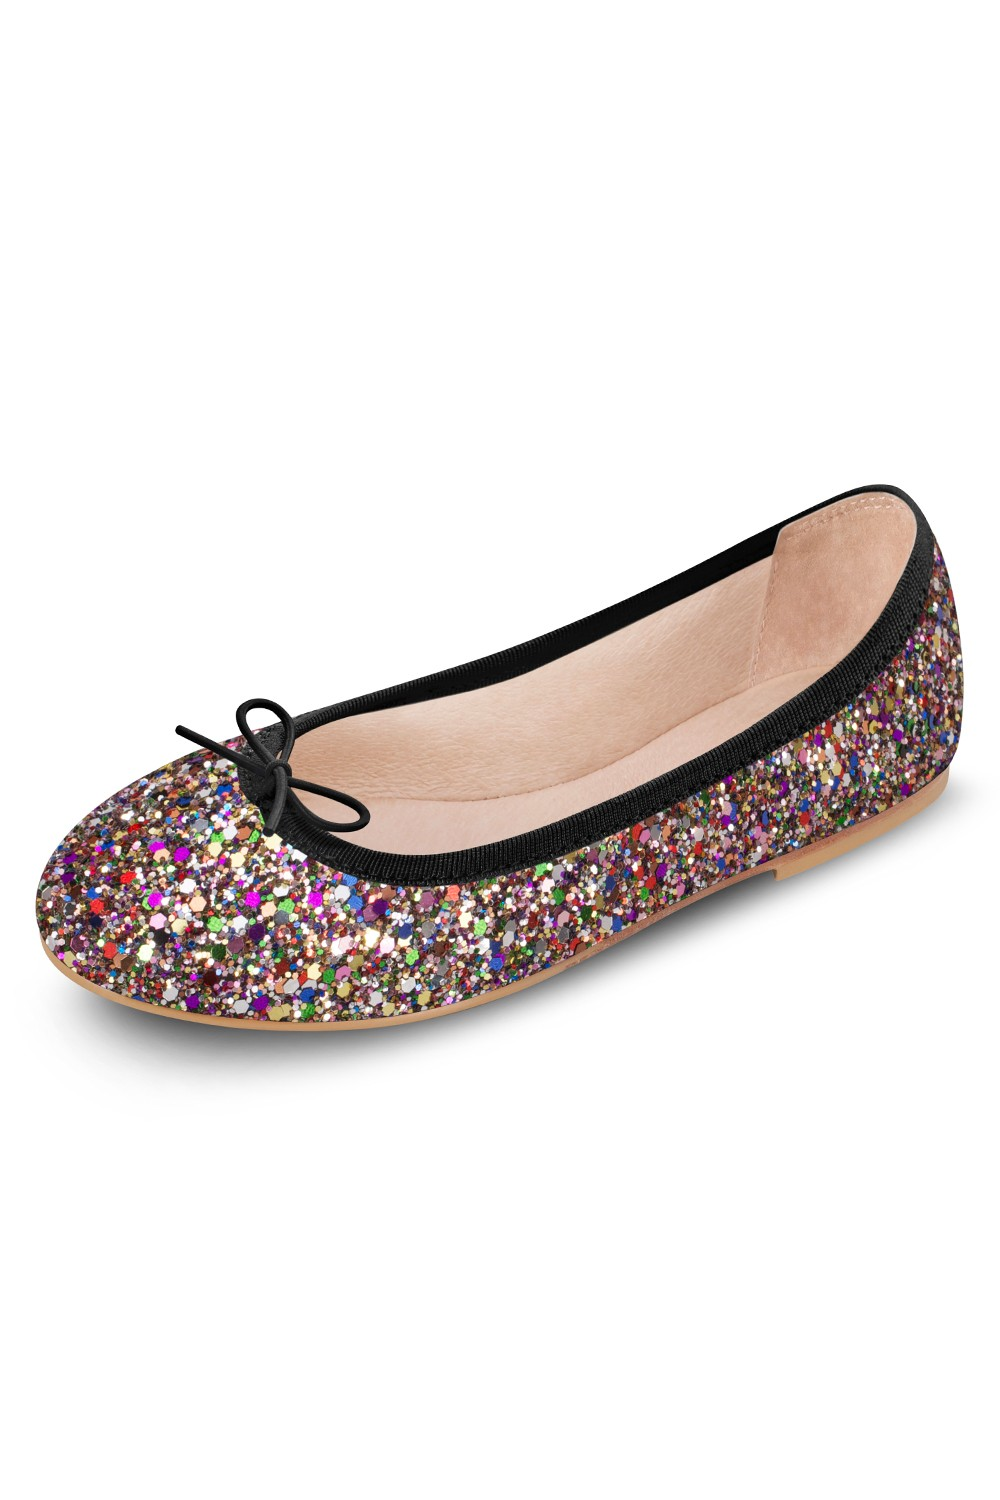 Brillo - Niñas Girls Fashion Shoes